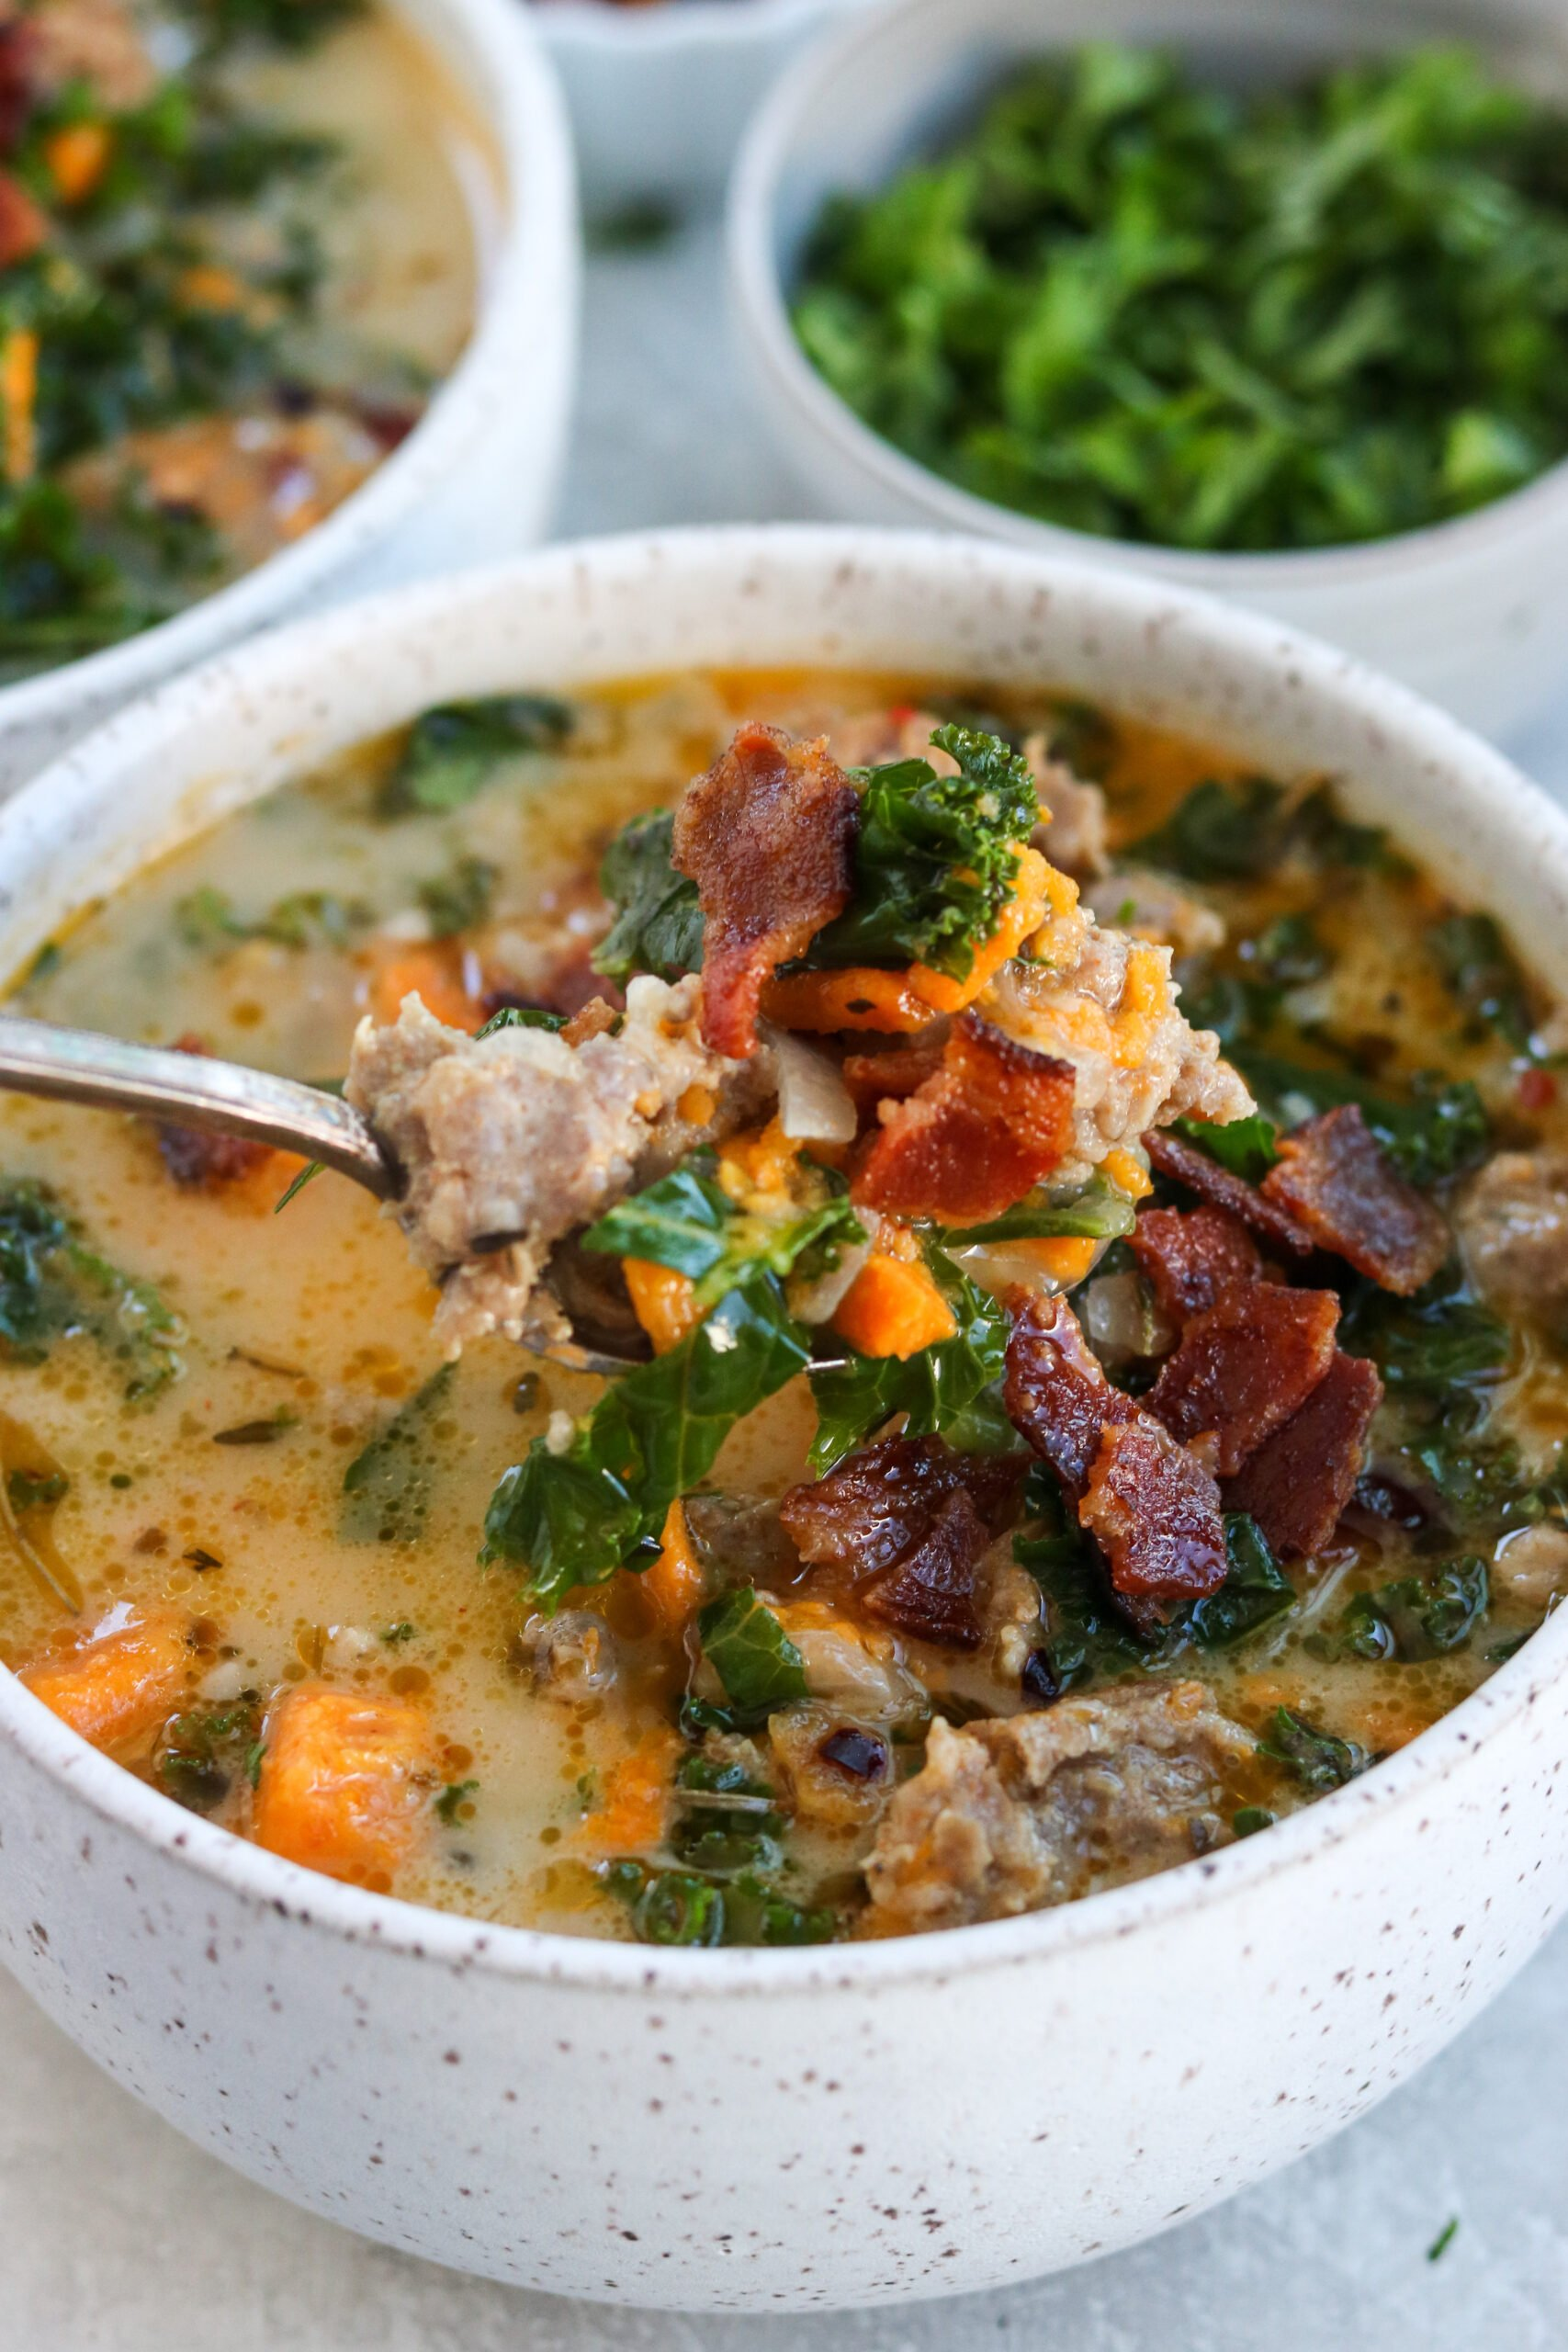 A spoonful of Whole30 Zuppa Toscana with crumbled bacon, sausage, and sweet potatoes